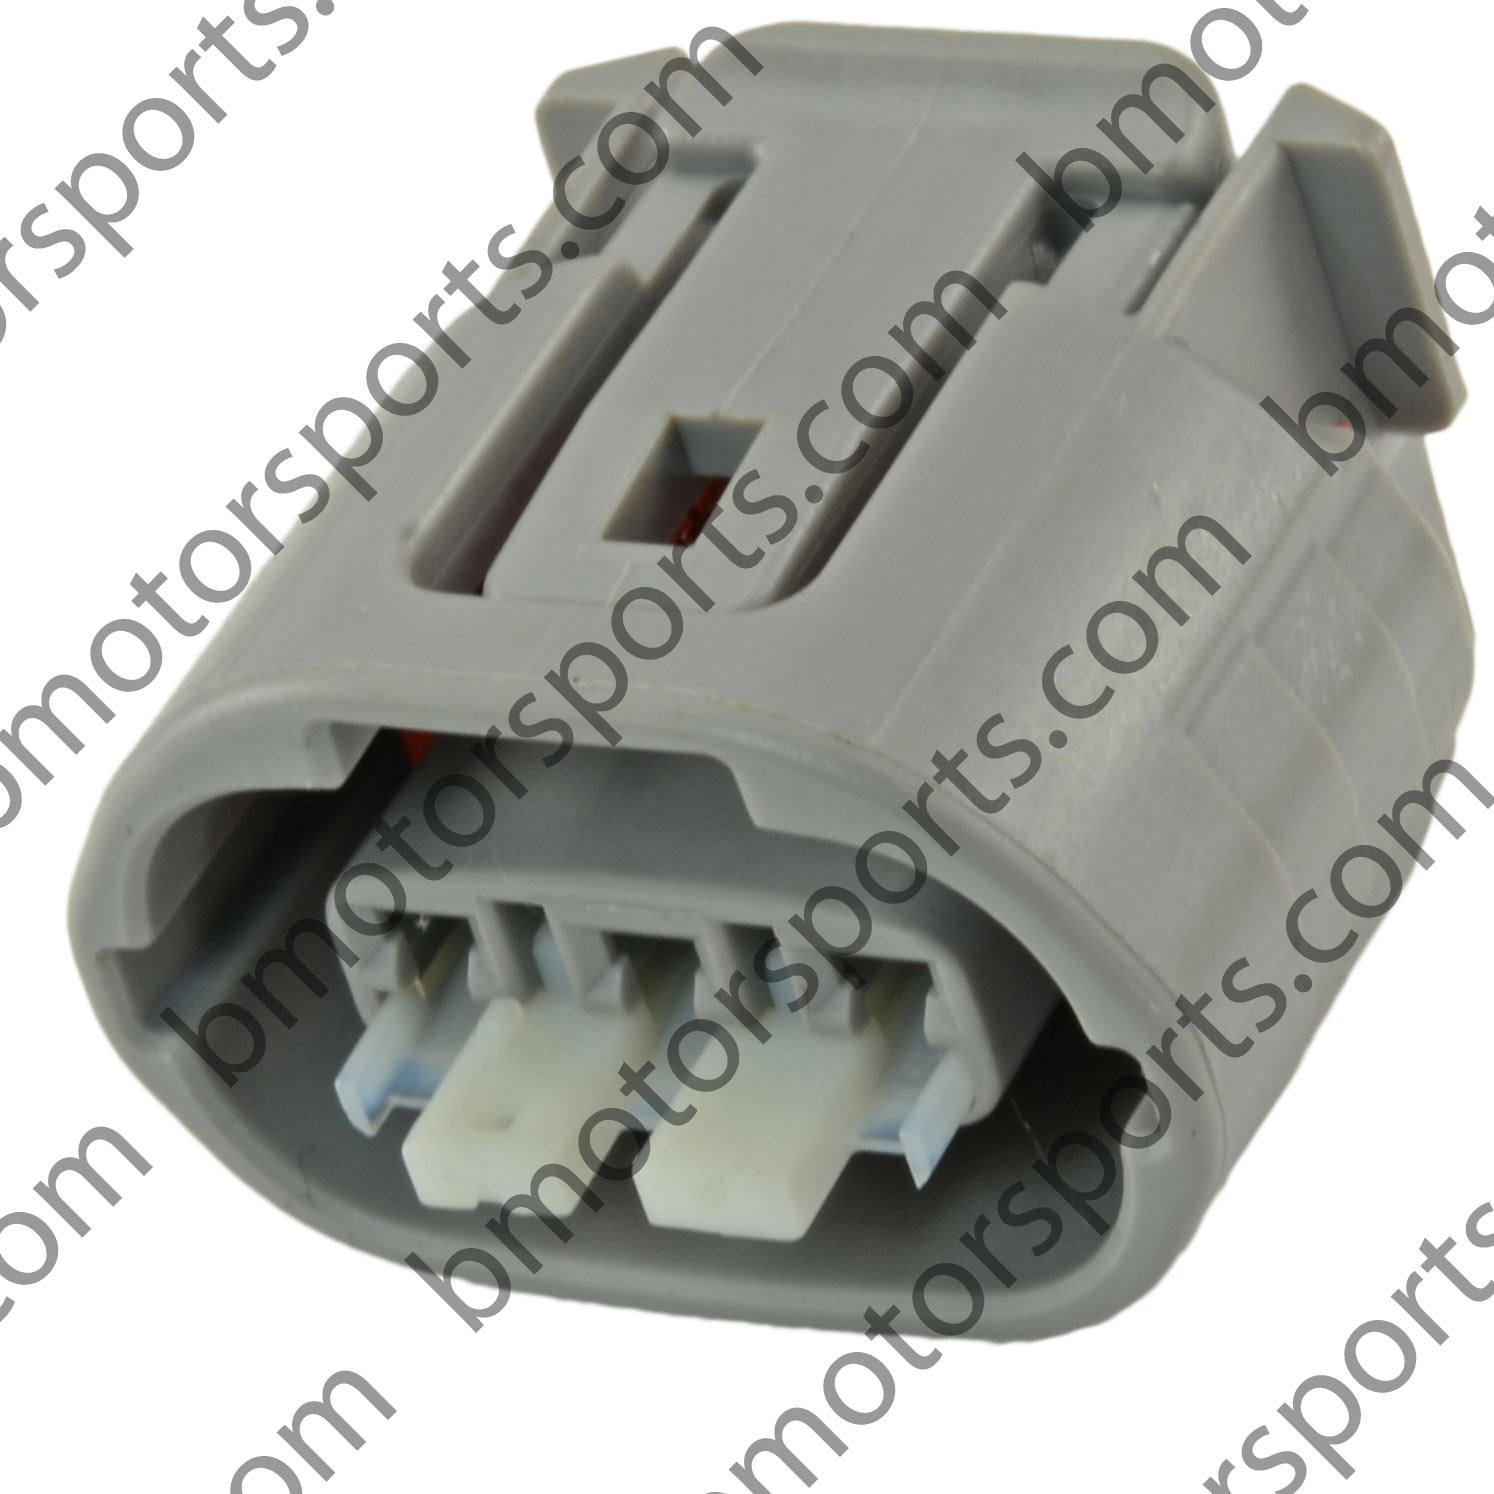 Home Shop Sumitomo Ts 3 Way Plug Housing 6189 0443 Toyota Trailer Wiring Kit 90980 11349 Connector Pigtail